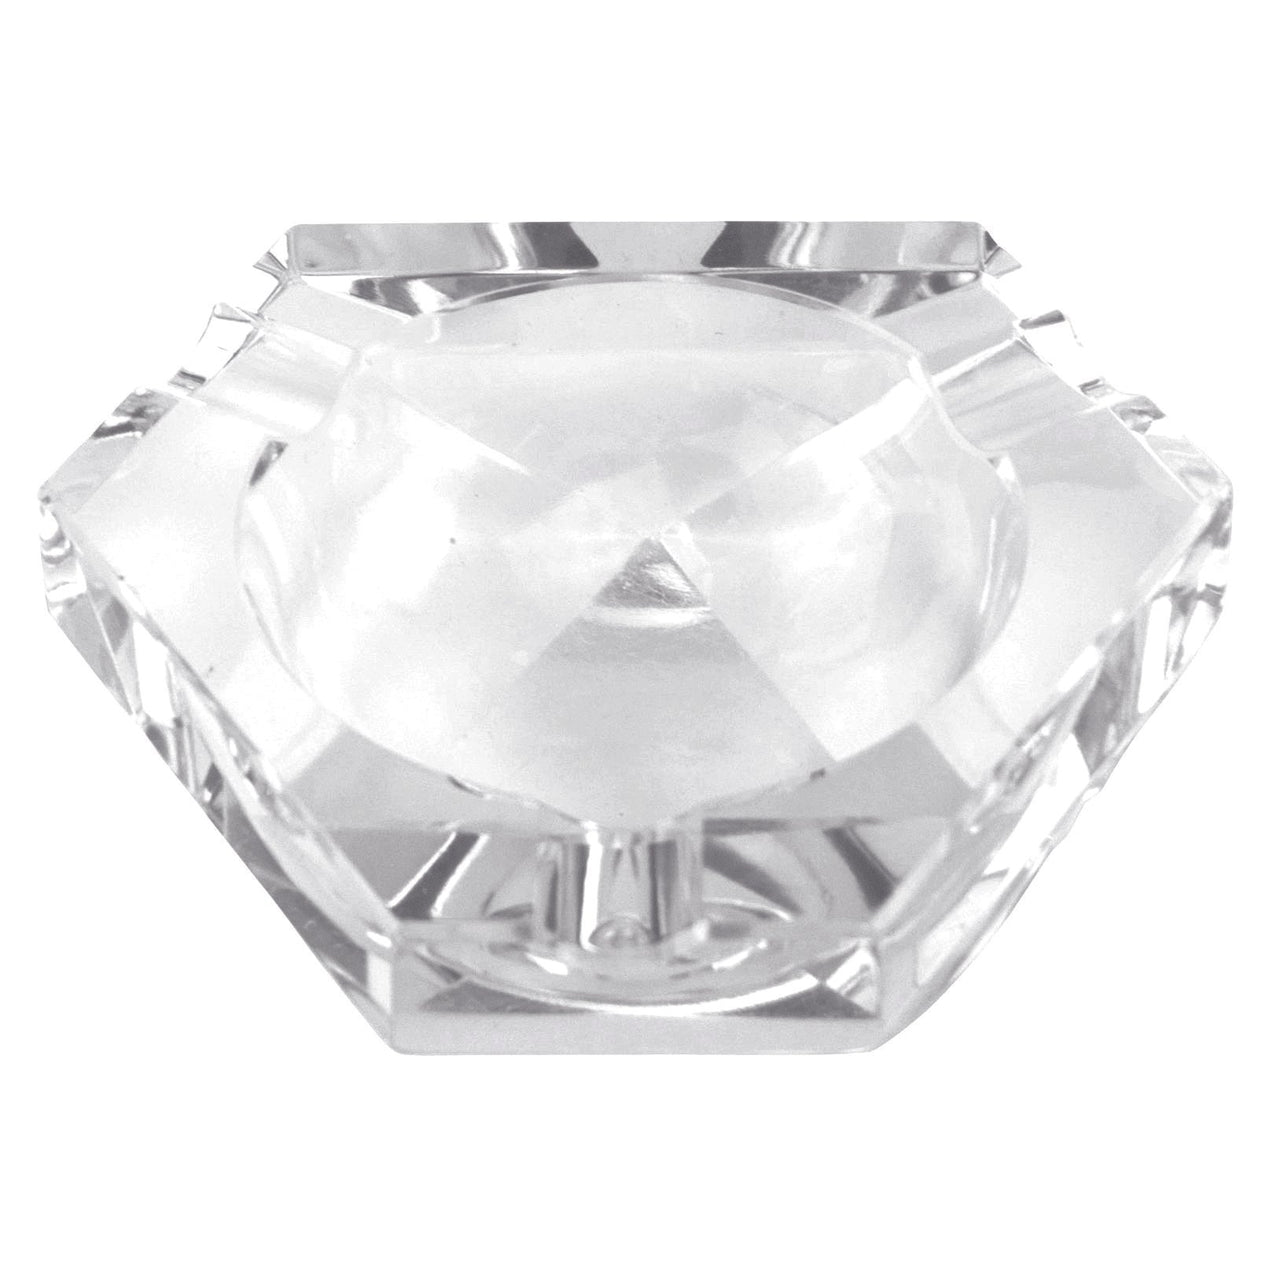 Cut Crystal 3 Divot Ashtray | The Hour Shop Vintage Barware